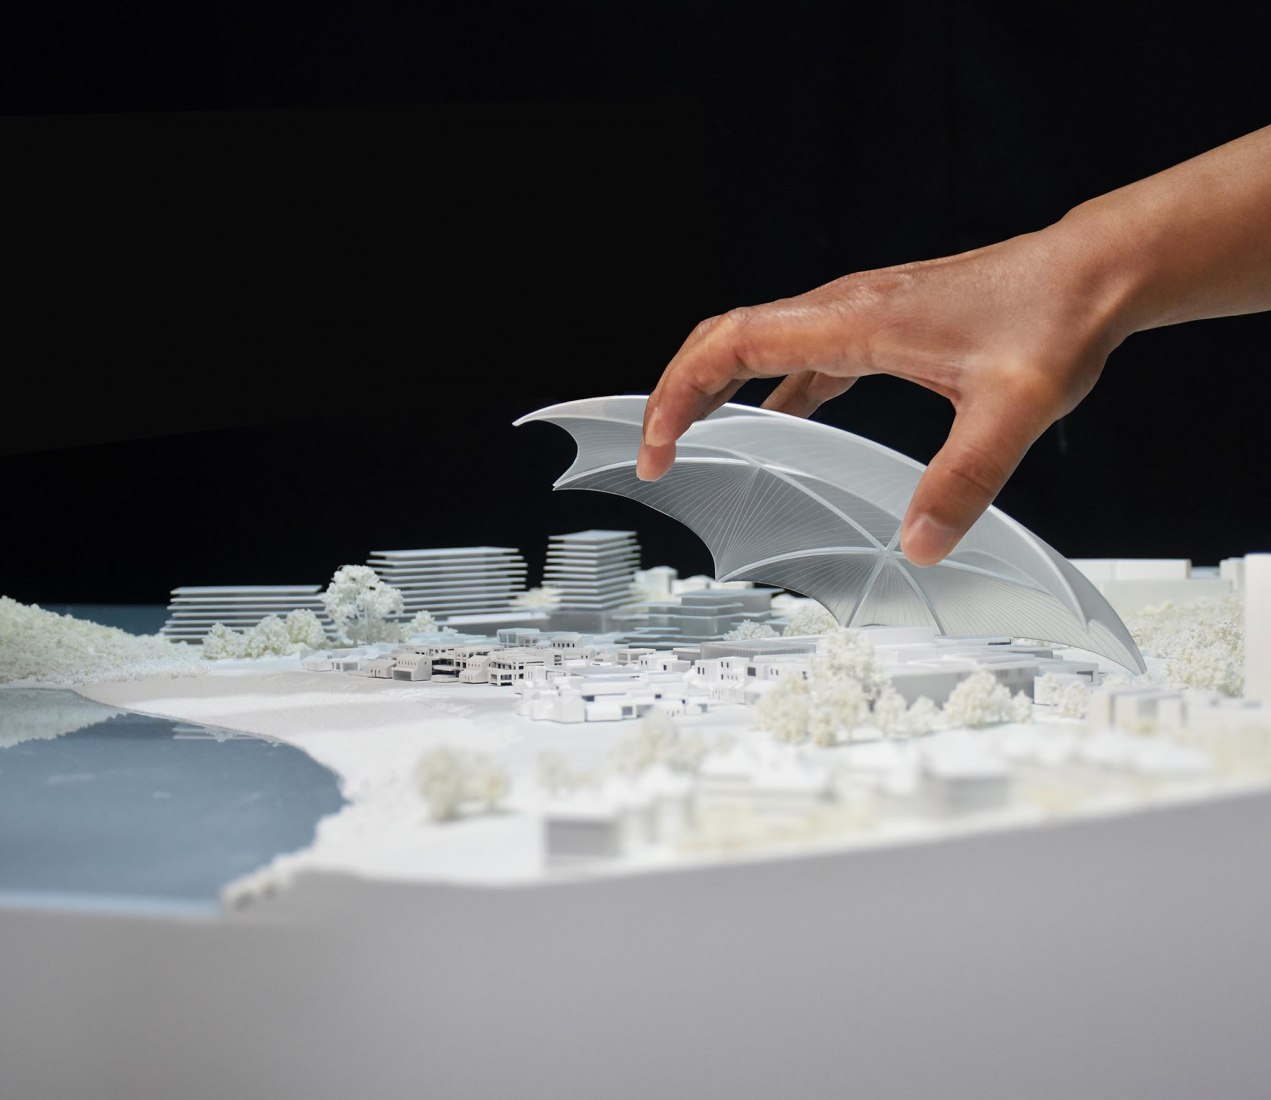 Model. Zhuhai Cultural Arts Center by MAD Architects. Courtesy of MAD Architects